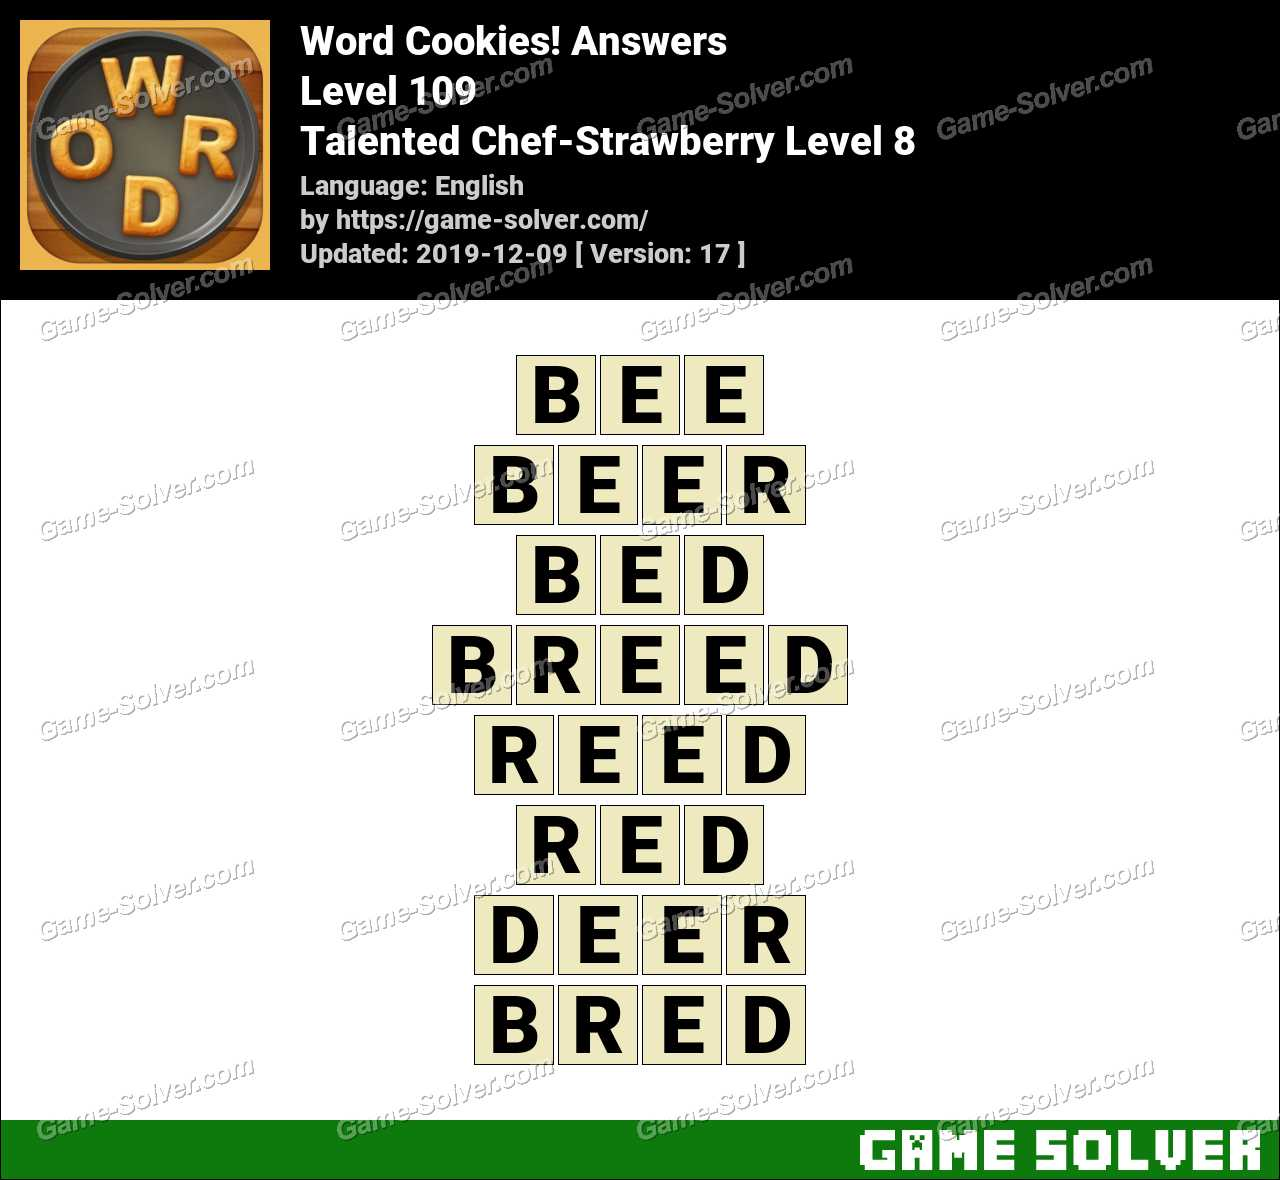 Word Cookies Talented Chef-Strawberry Level 8 Answers